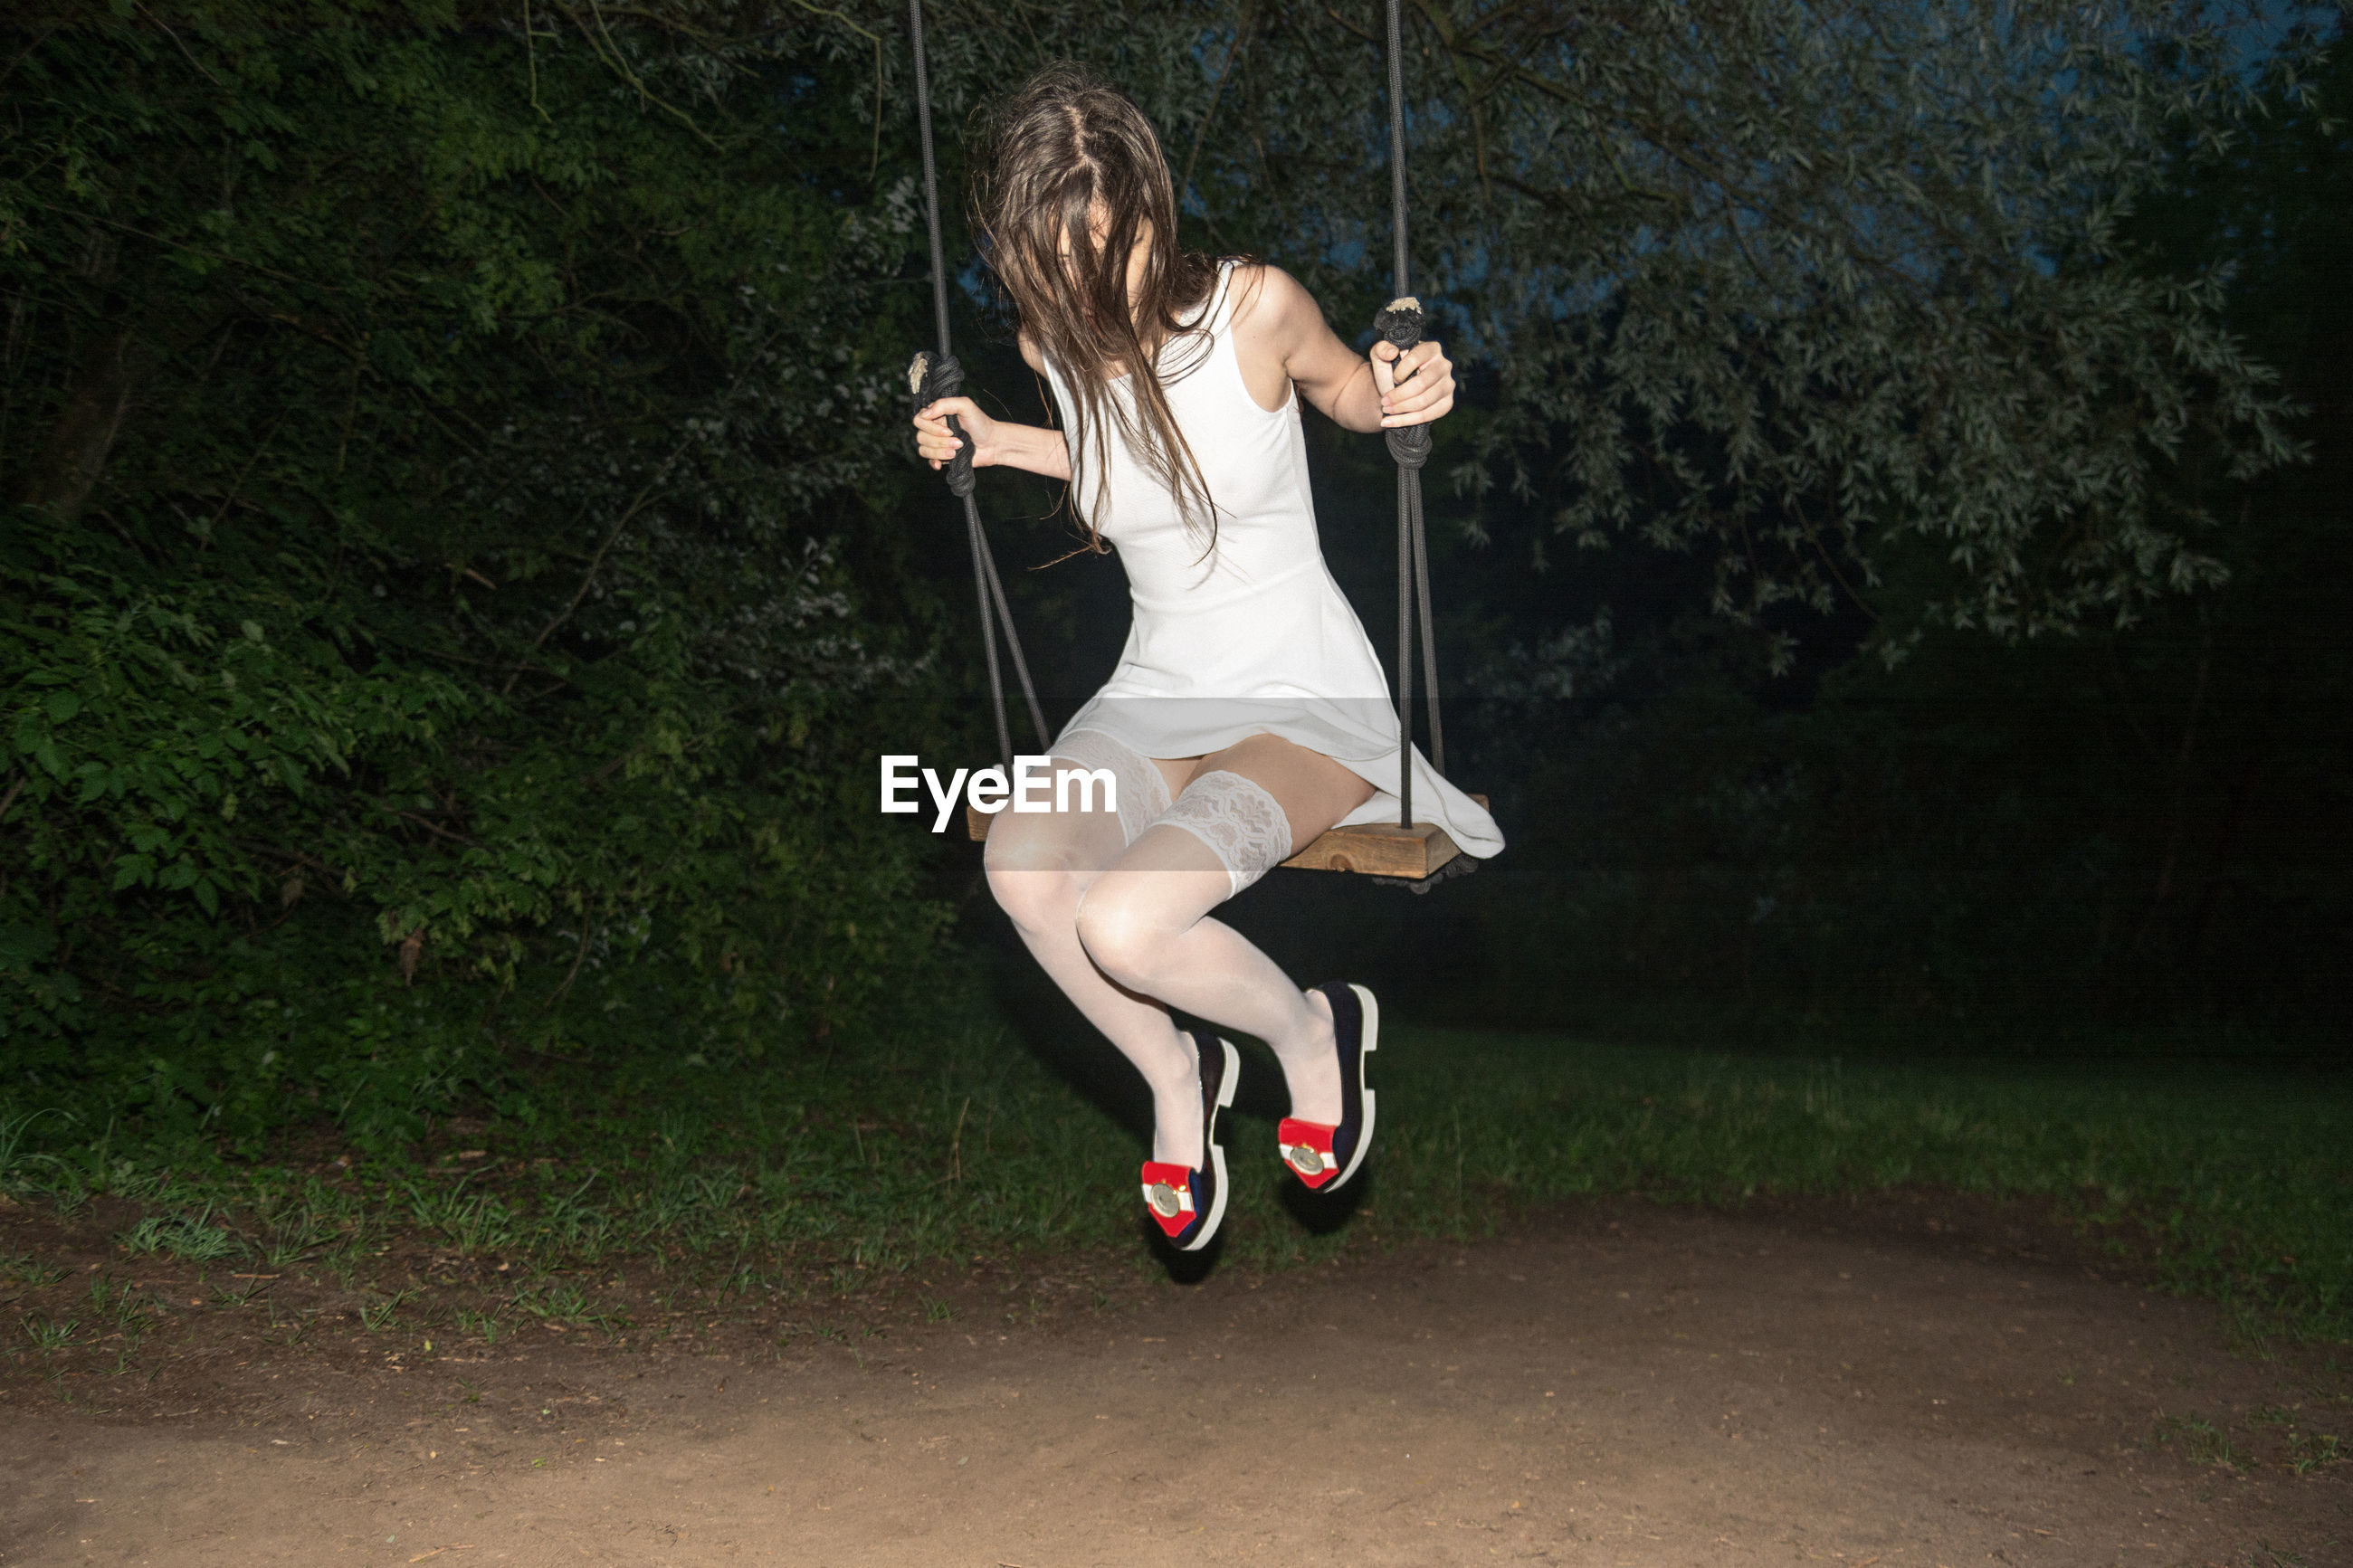 Full length of woman sitting on swing at park